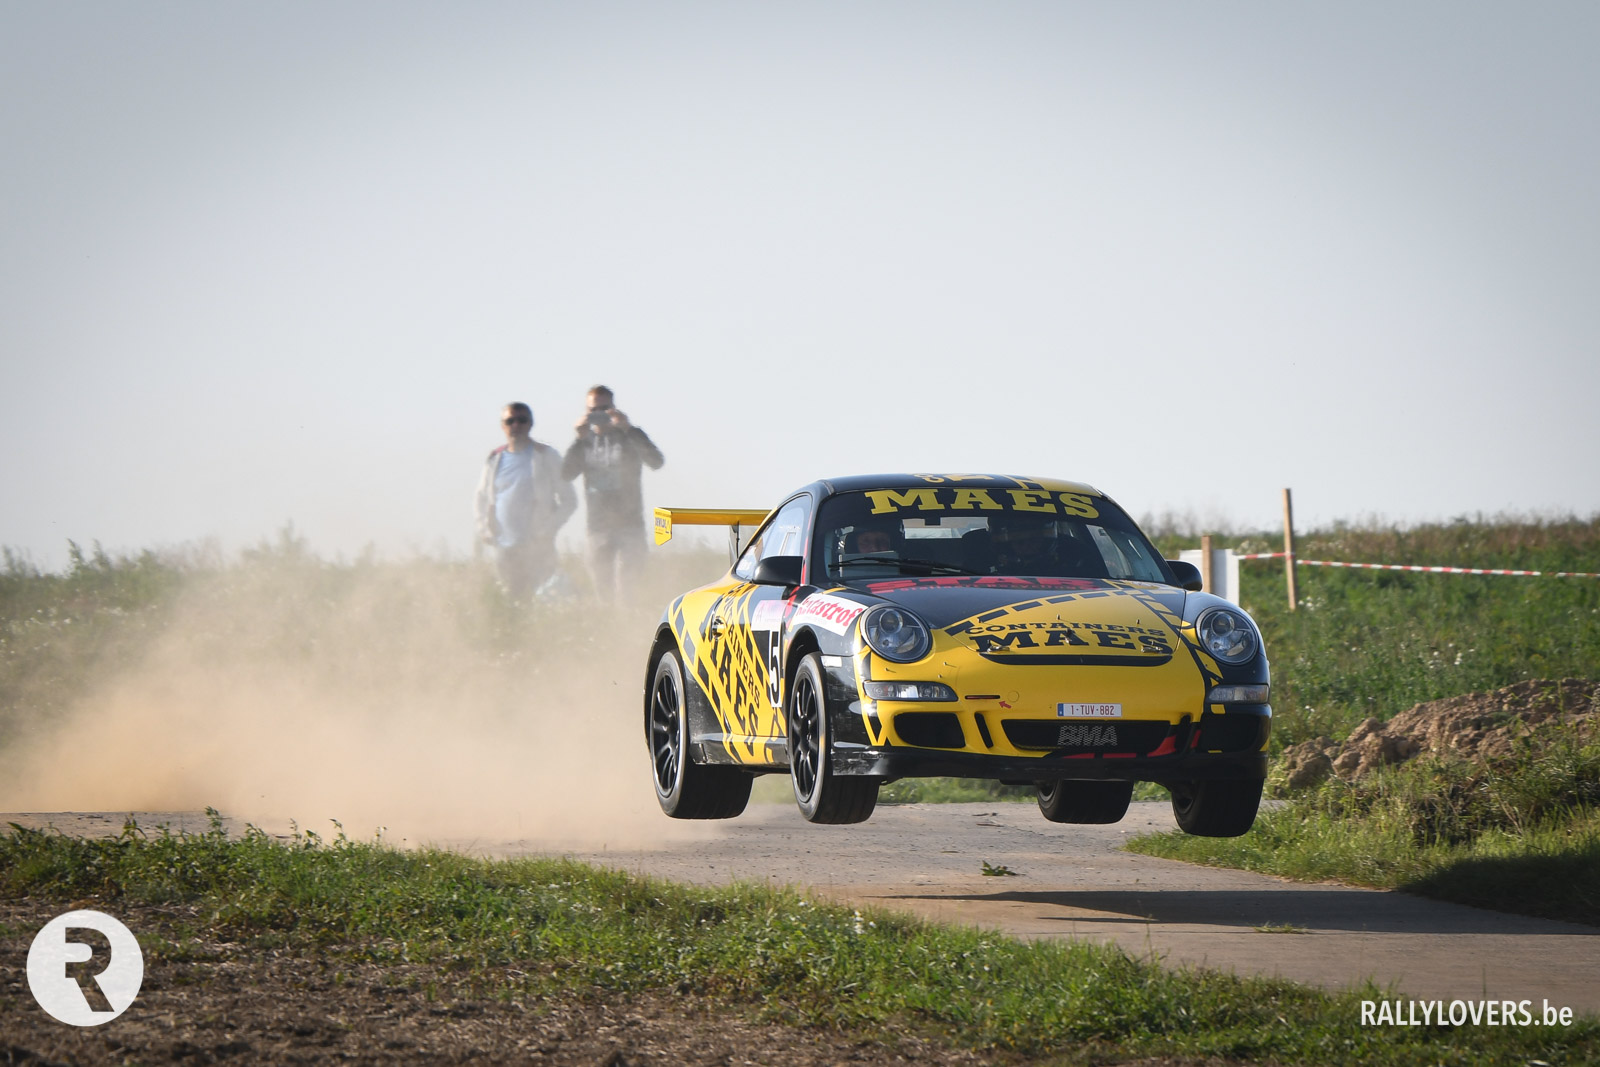 Preview - East Belgian Rally - Patrick Snijers